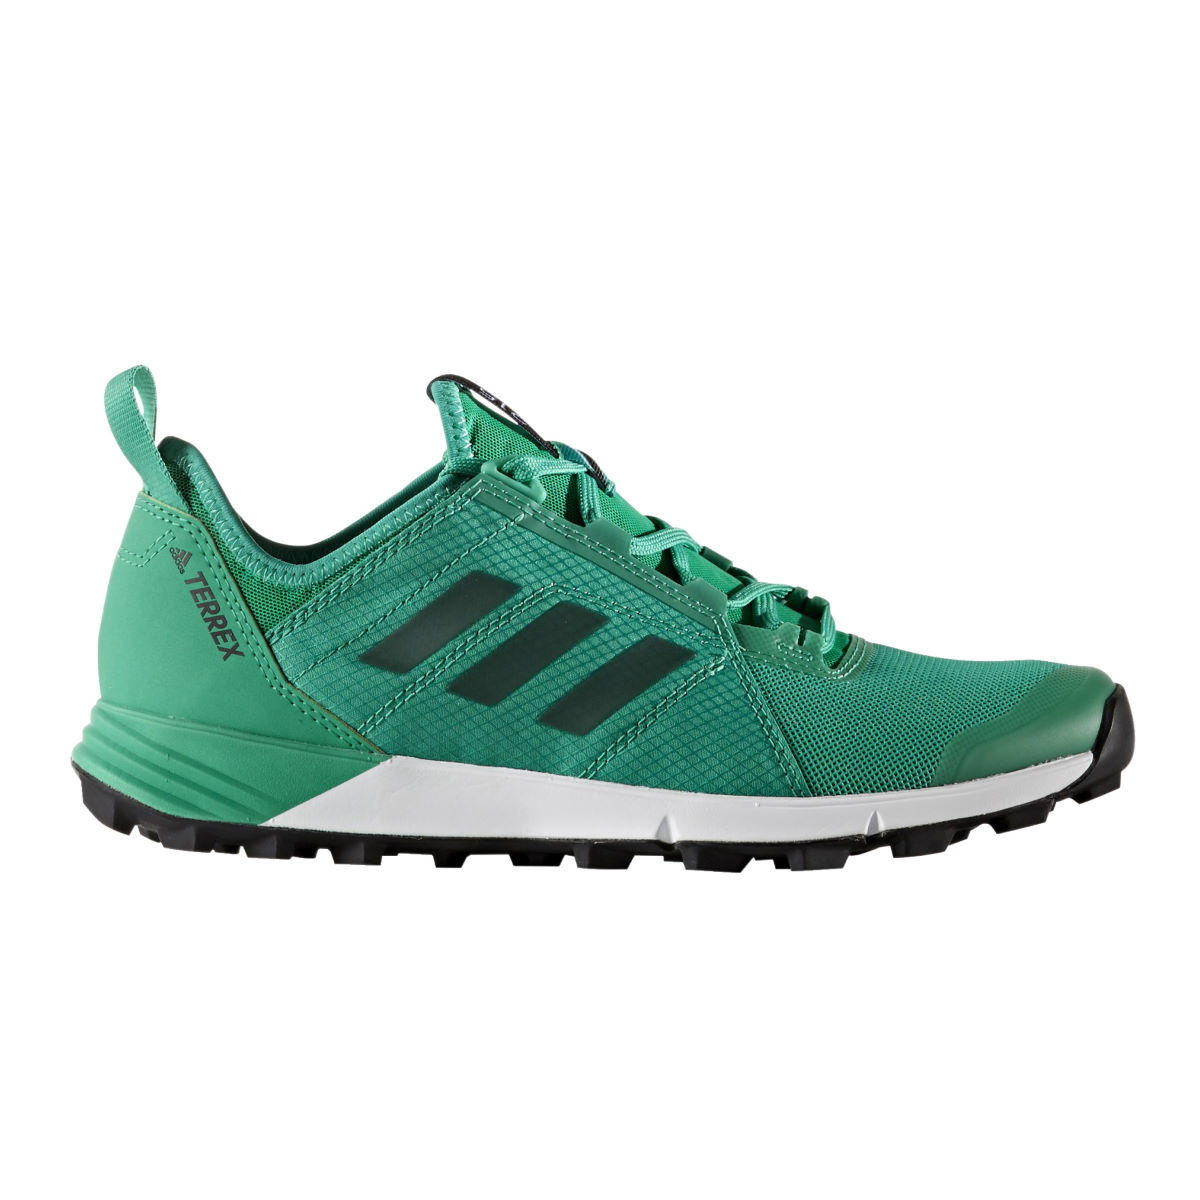 Chaussures Femme adidas Terrex Agravic Speed - 5 UK Chaussures